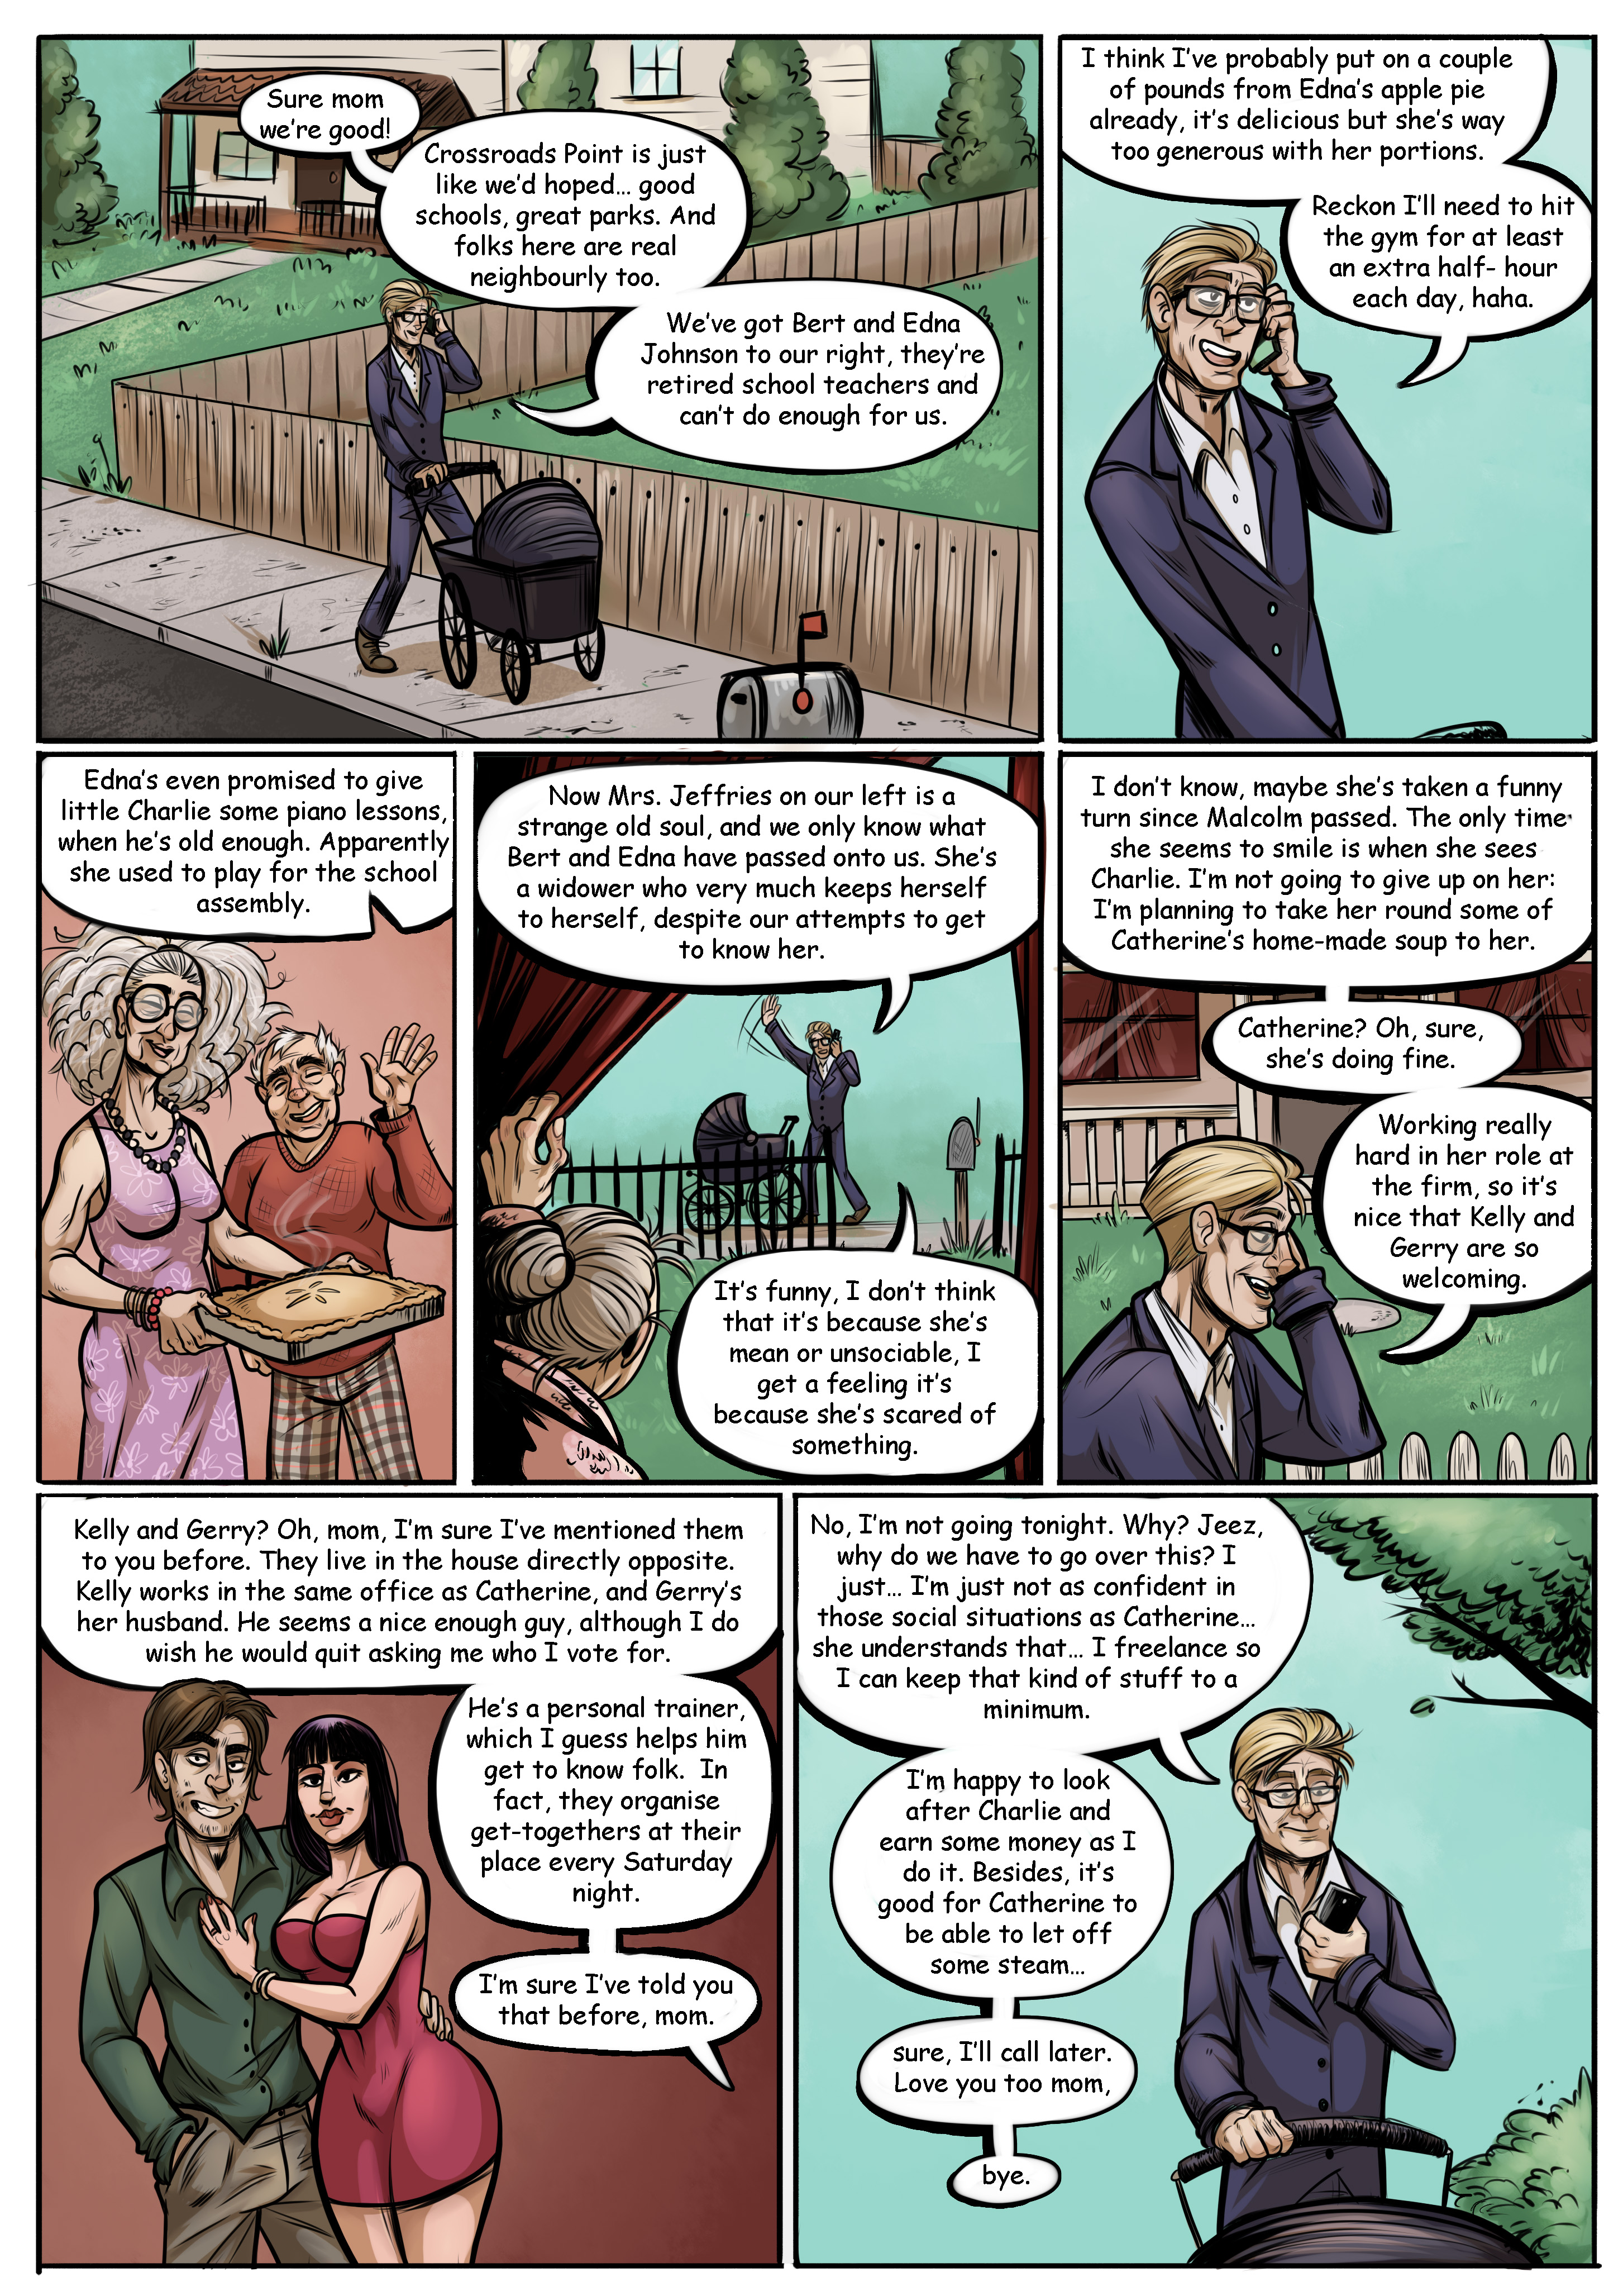 Saturday Night Seance Supernatural Horror Comedy Webcomic Page 1